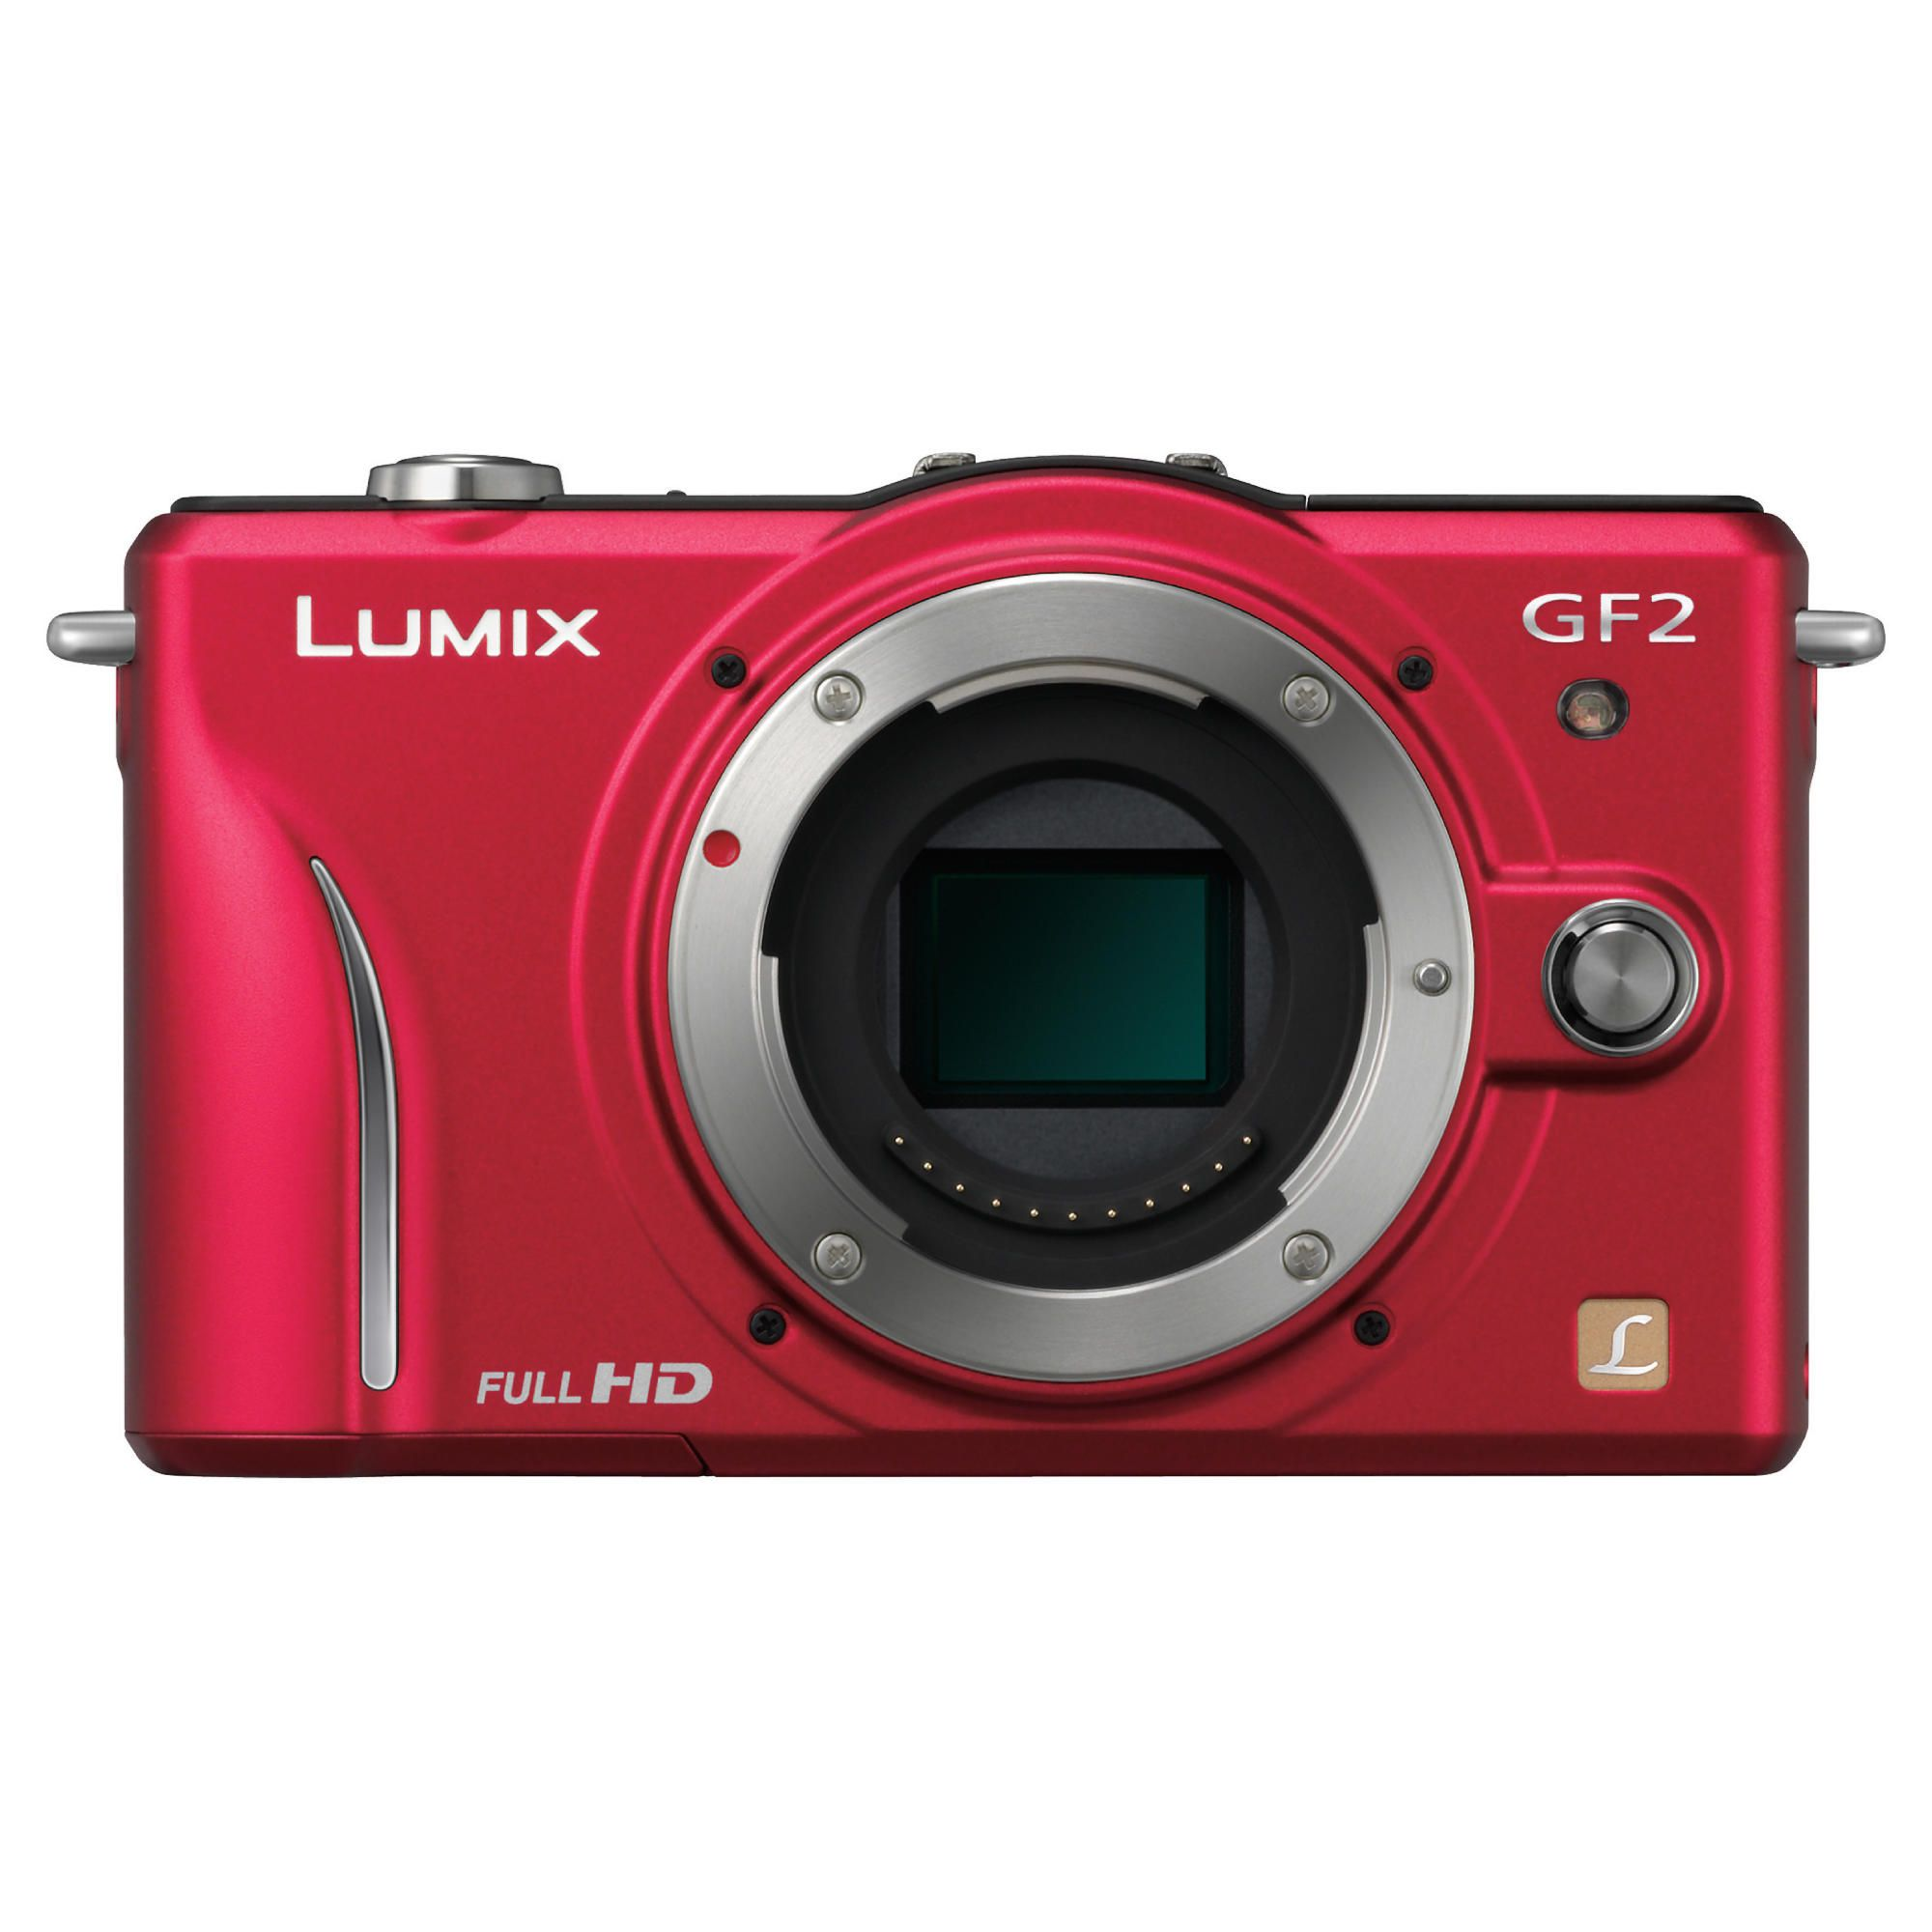 Panasonic Lumix GF2 Compact System Camera (with 14mm and 14-42mm Lenses) - Red